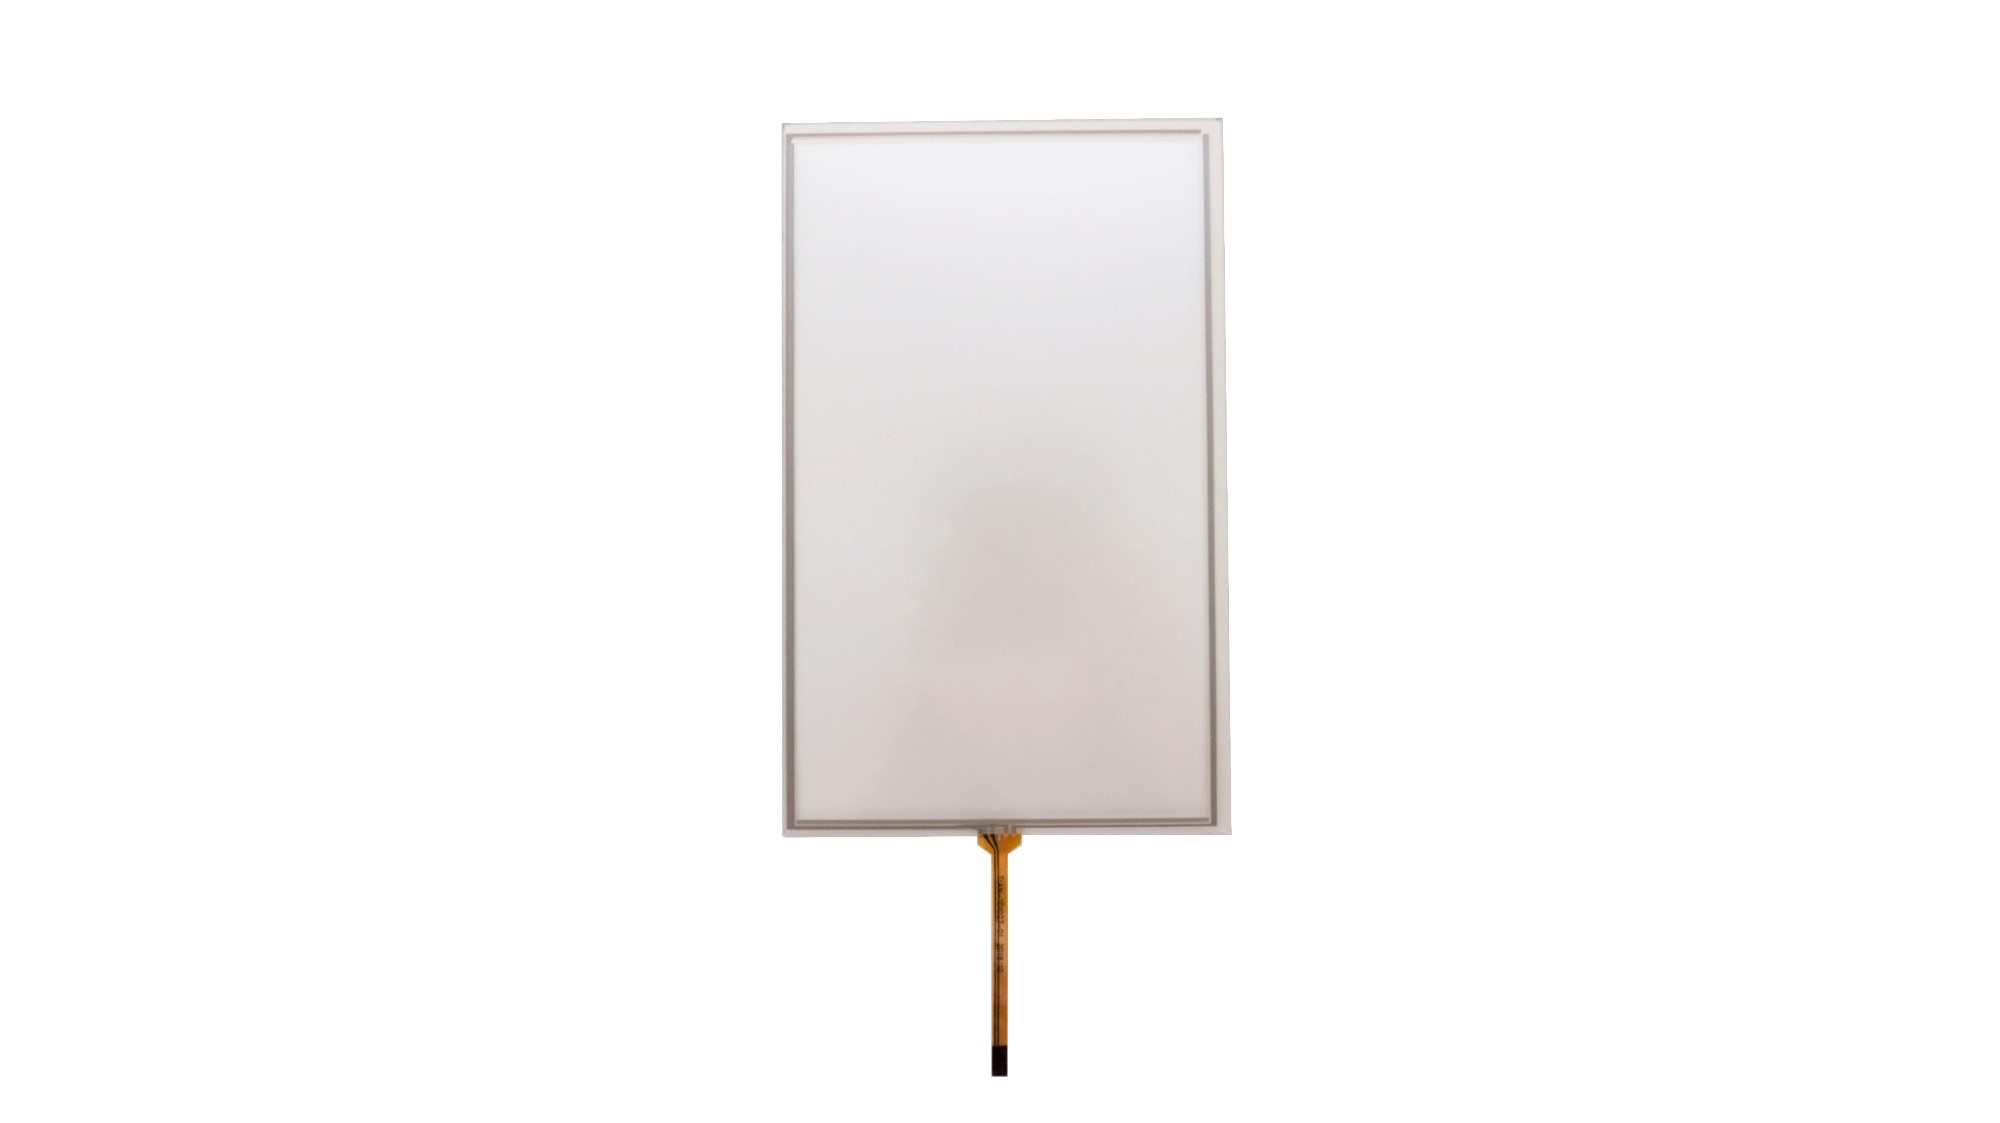 Medical Devices 10.1 Inch Resistive Touch Panel